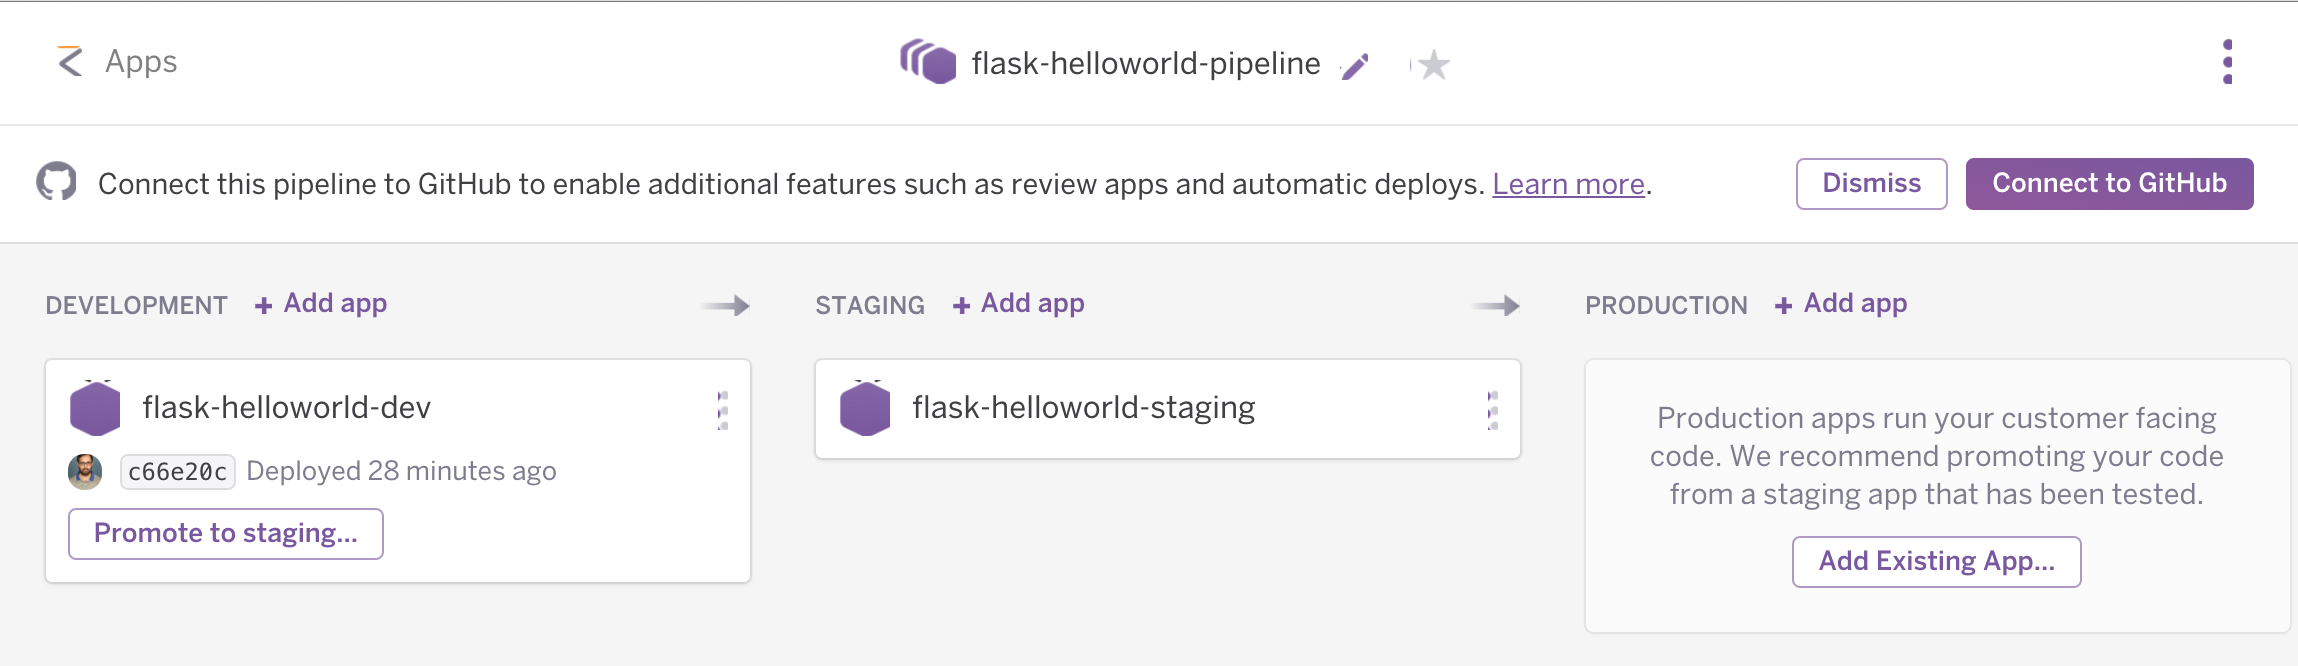 ../../_images/heroku-pipeline-development-staging.png